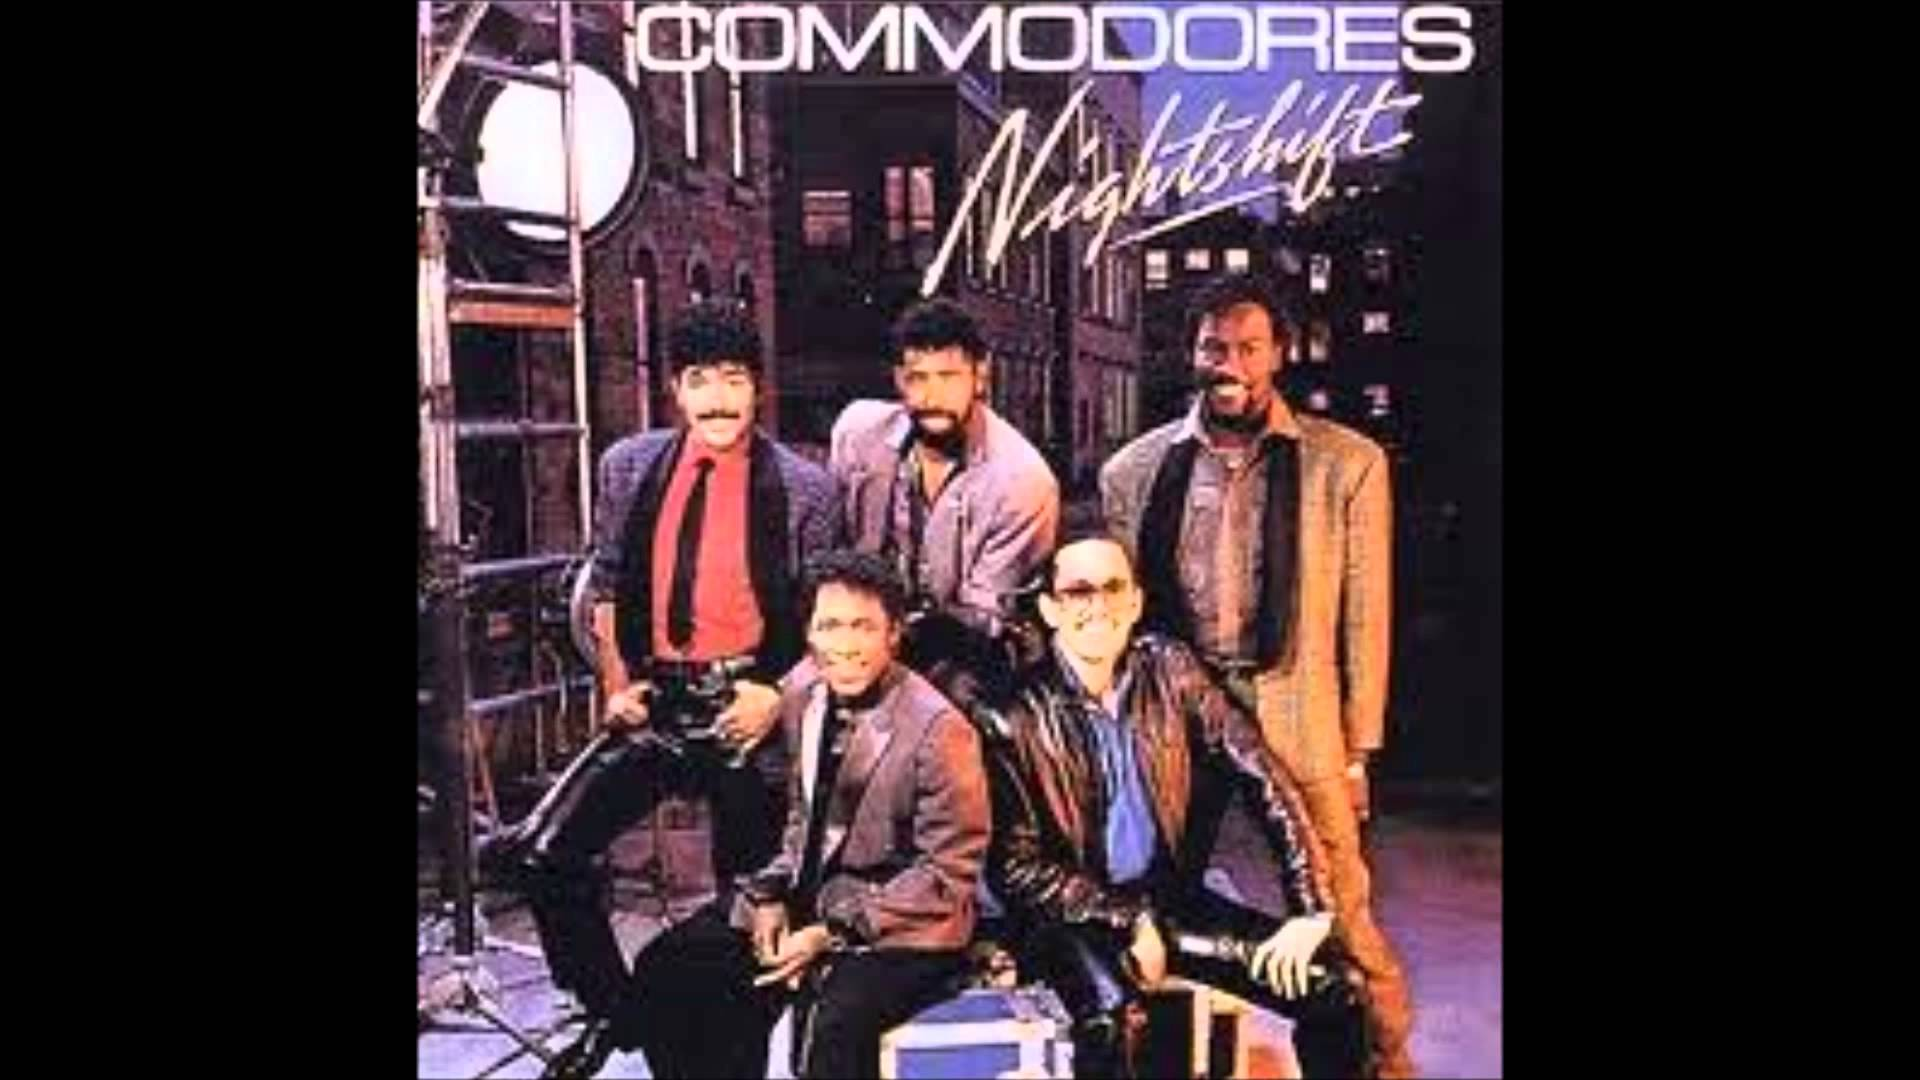 Nice Images Collection: The Commodores Desktop Wallpapers